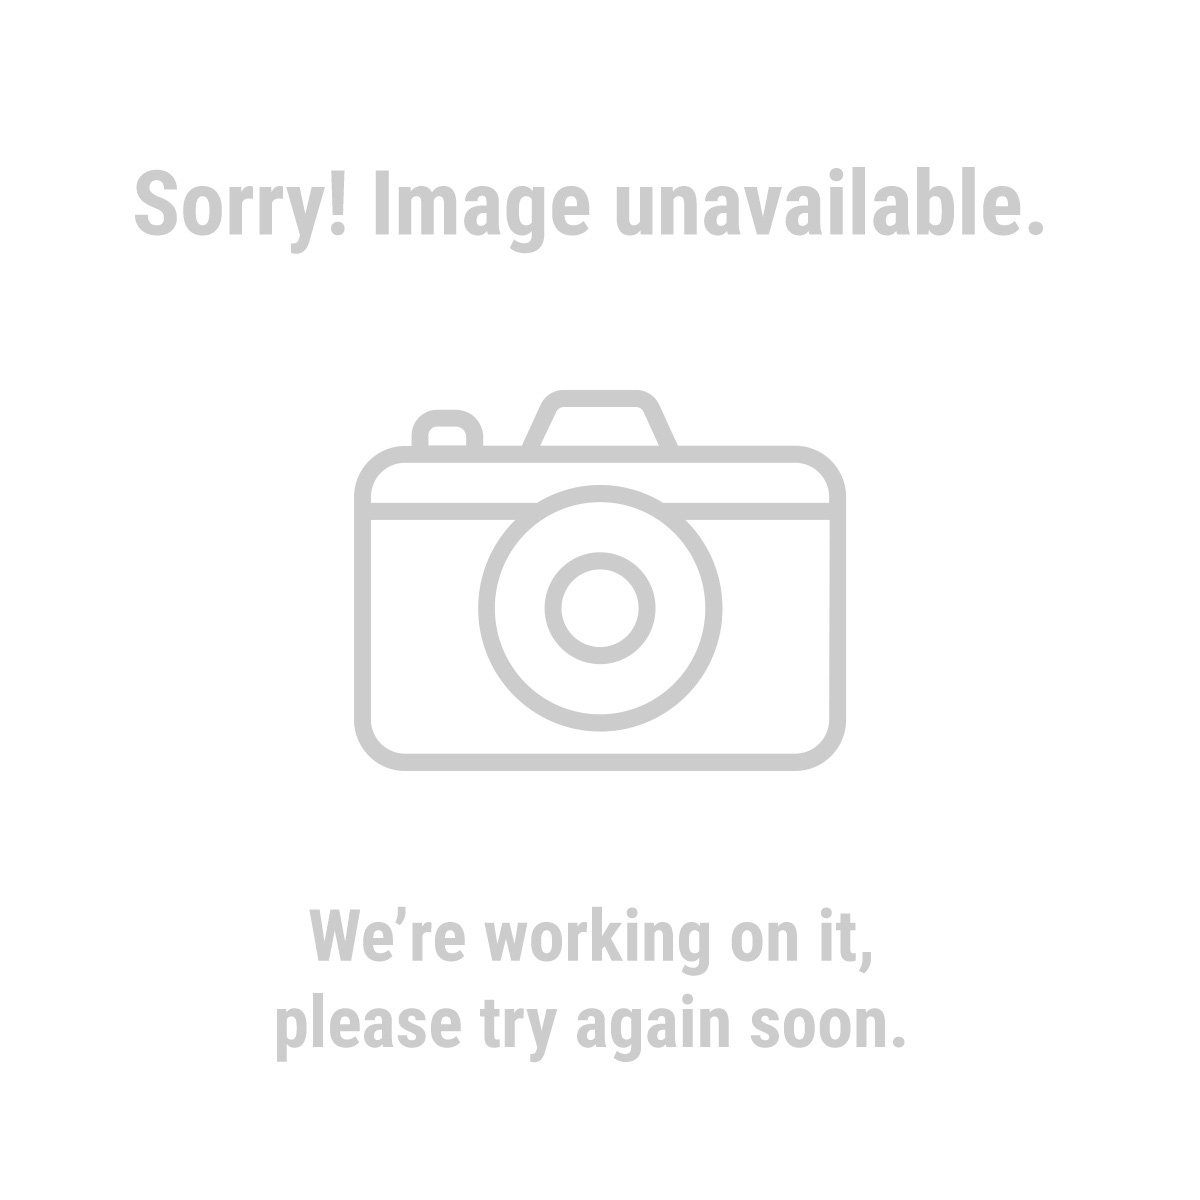 Warrior 61502 5 Piece 2 in. Medium Grade Fiber Surface Conditioning Discs